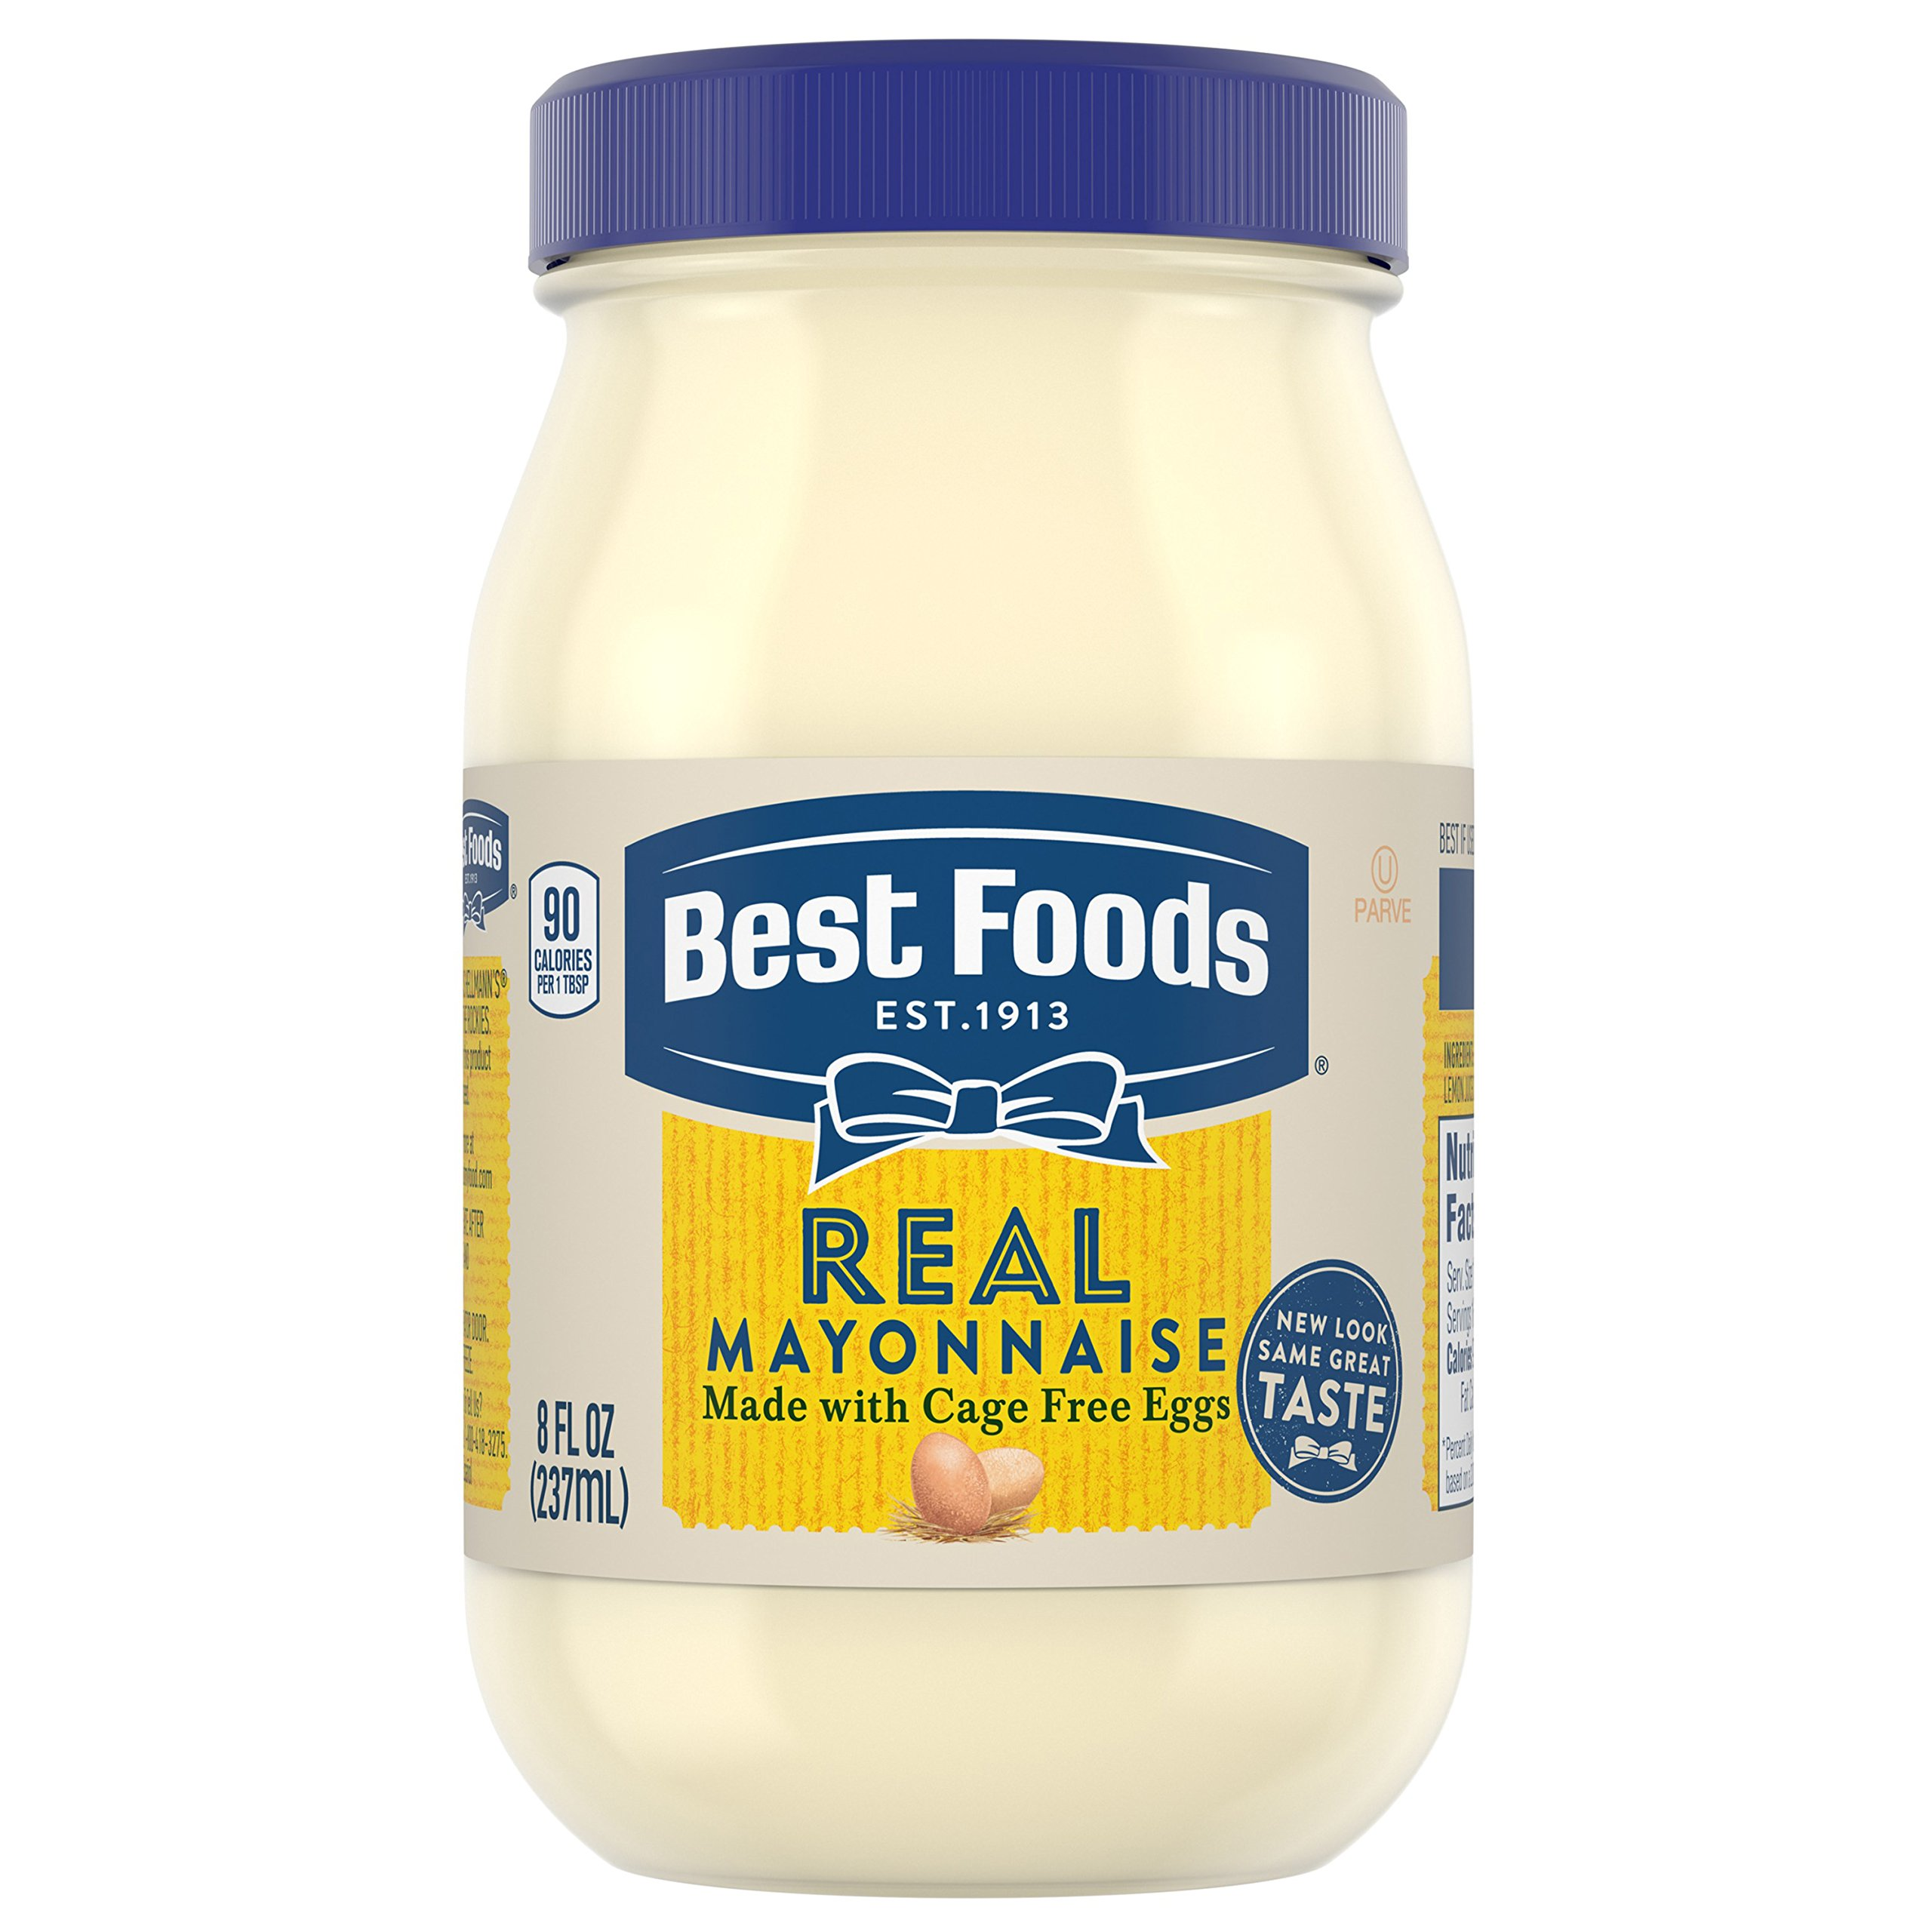 Best Foods Mayonnaise, Real, 8 oz